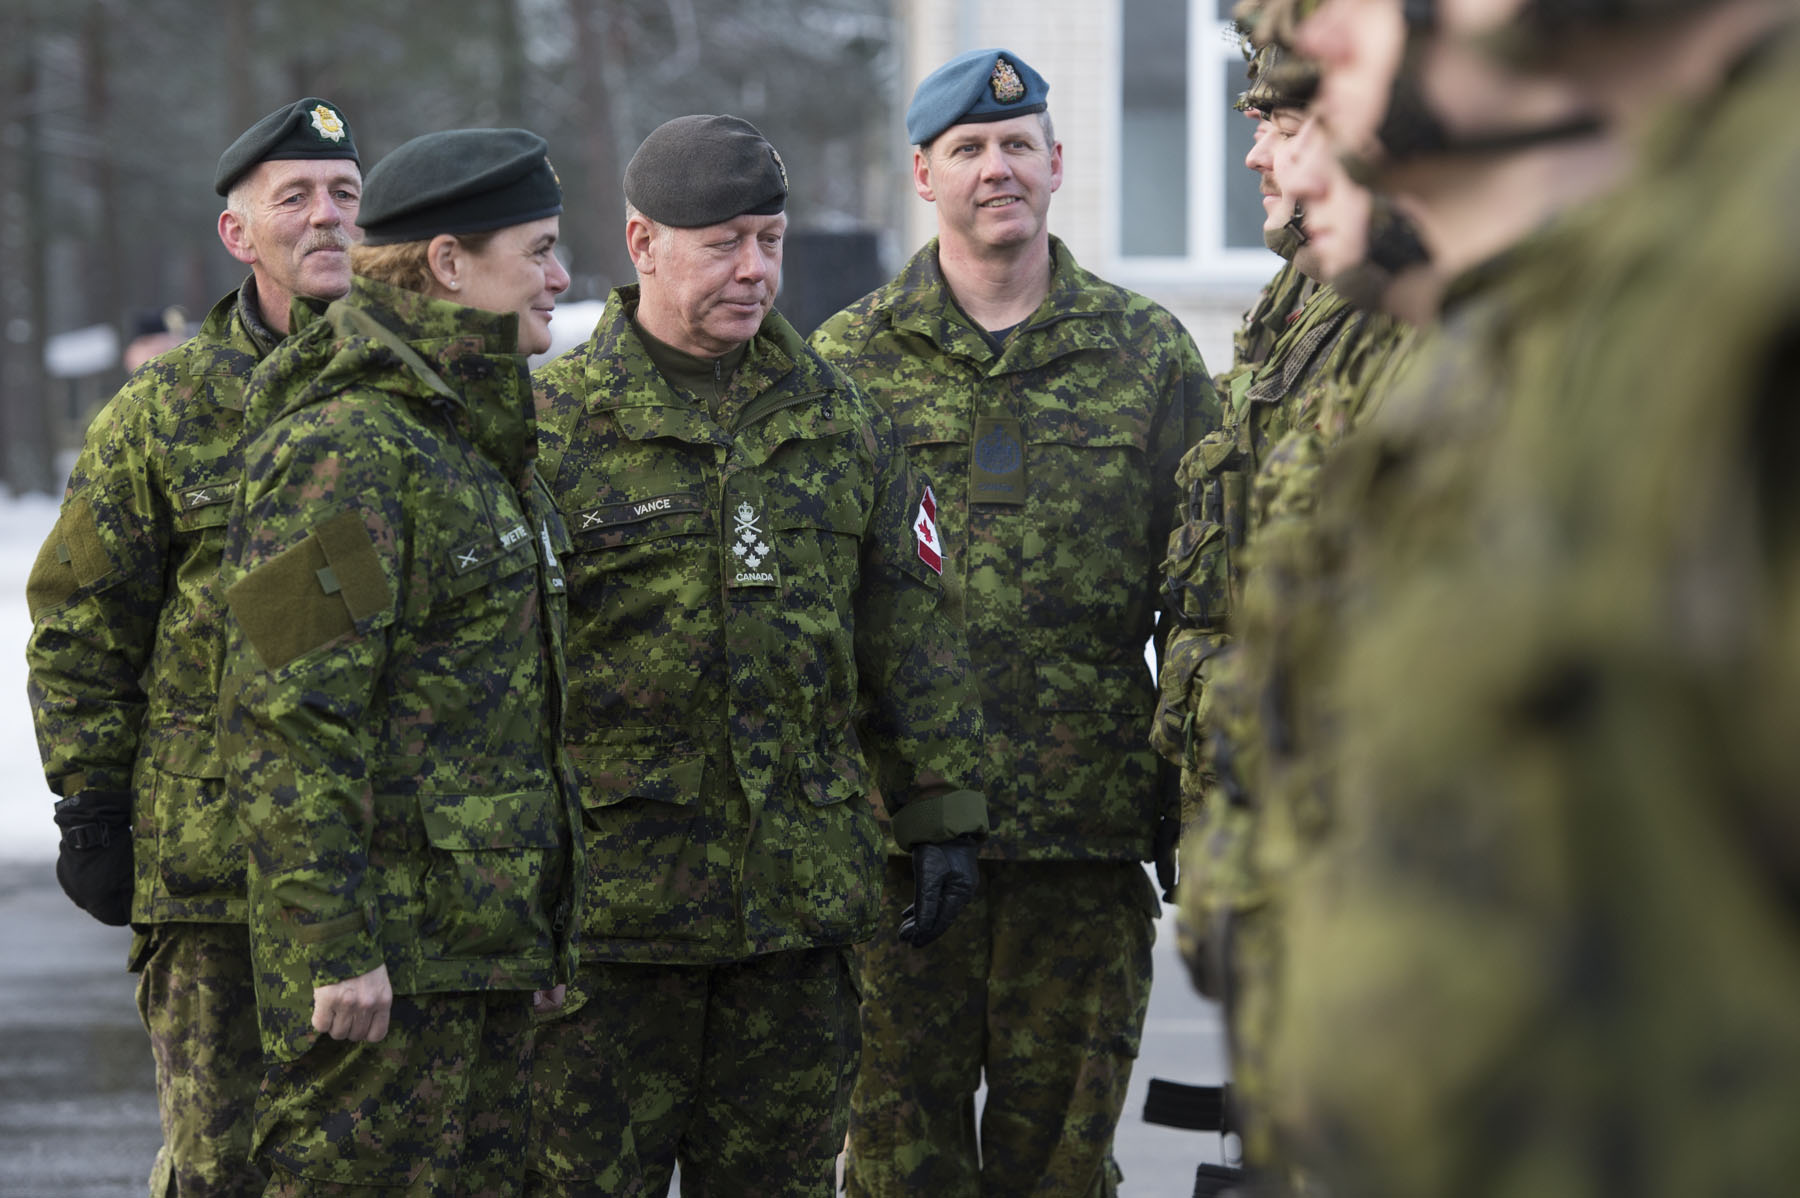 Later that morning, Her Excellency and General Jonathan Vance, Chief of the Defence Staff travelled to Camp Adaži to meet with troops serving in NATO's multinational enhanced Forward Presence Battlegroup Latvia (eFP BG).